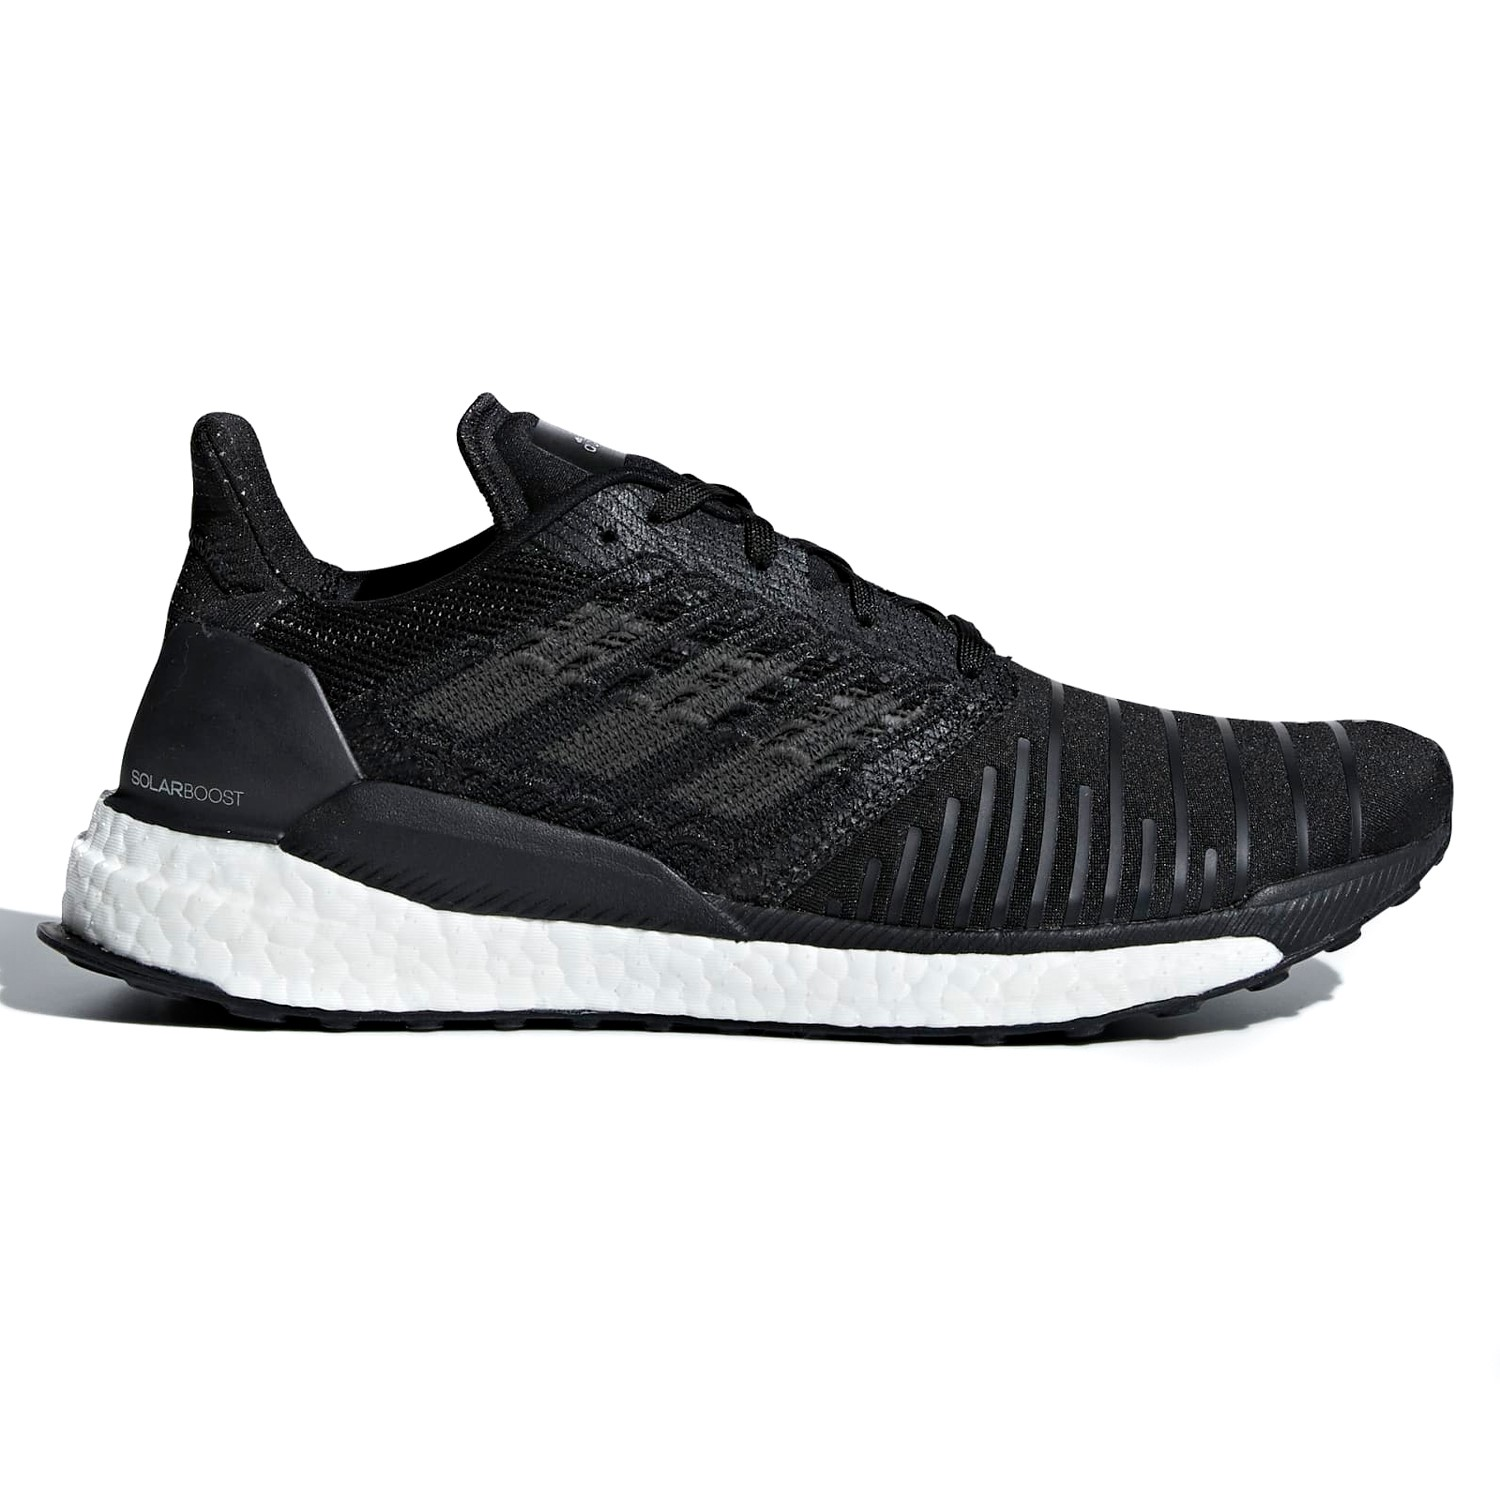 best authentic eec9f de74a Adidas Solar Boost - Womens Running Shoes - Core BlackGreyFootwear White